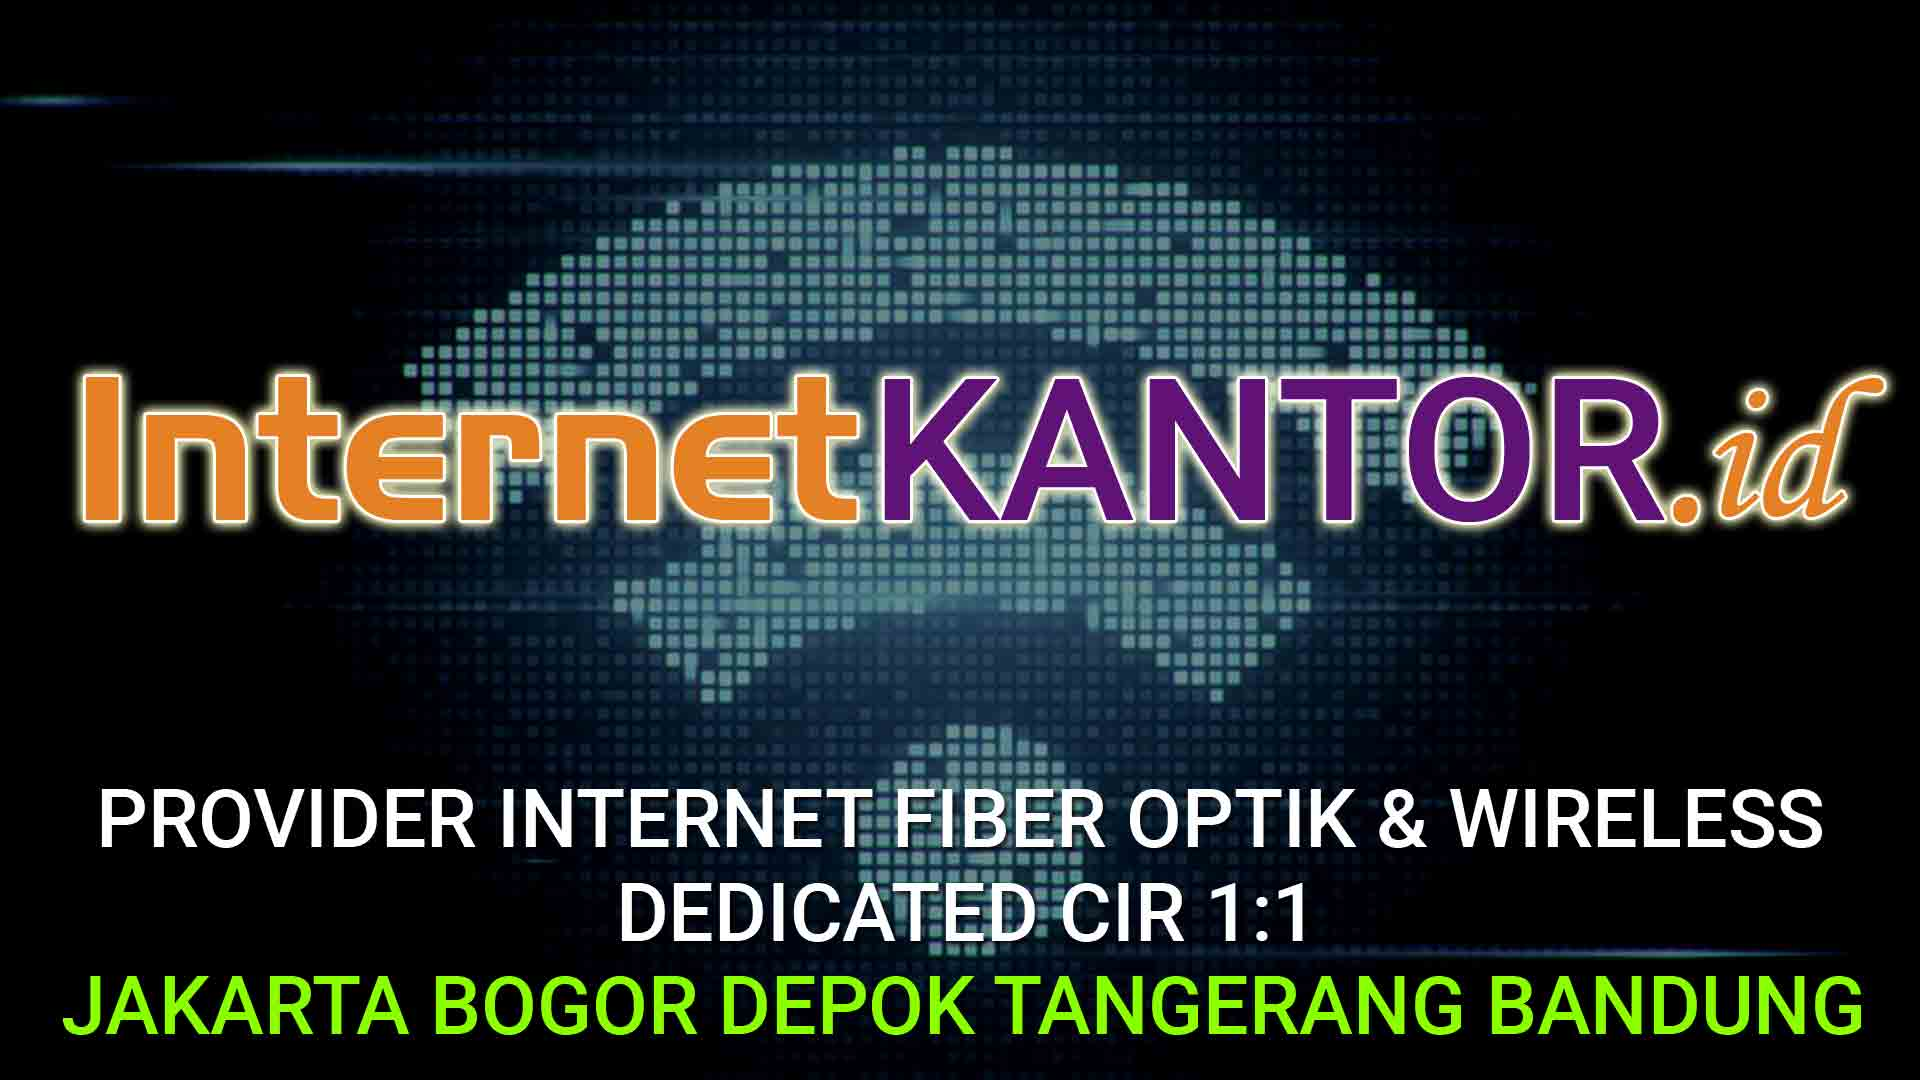 Harga Paket Internet Kantor Wireless Dedicated Corporate